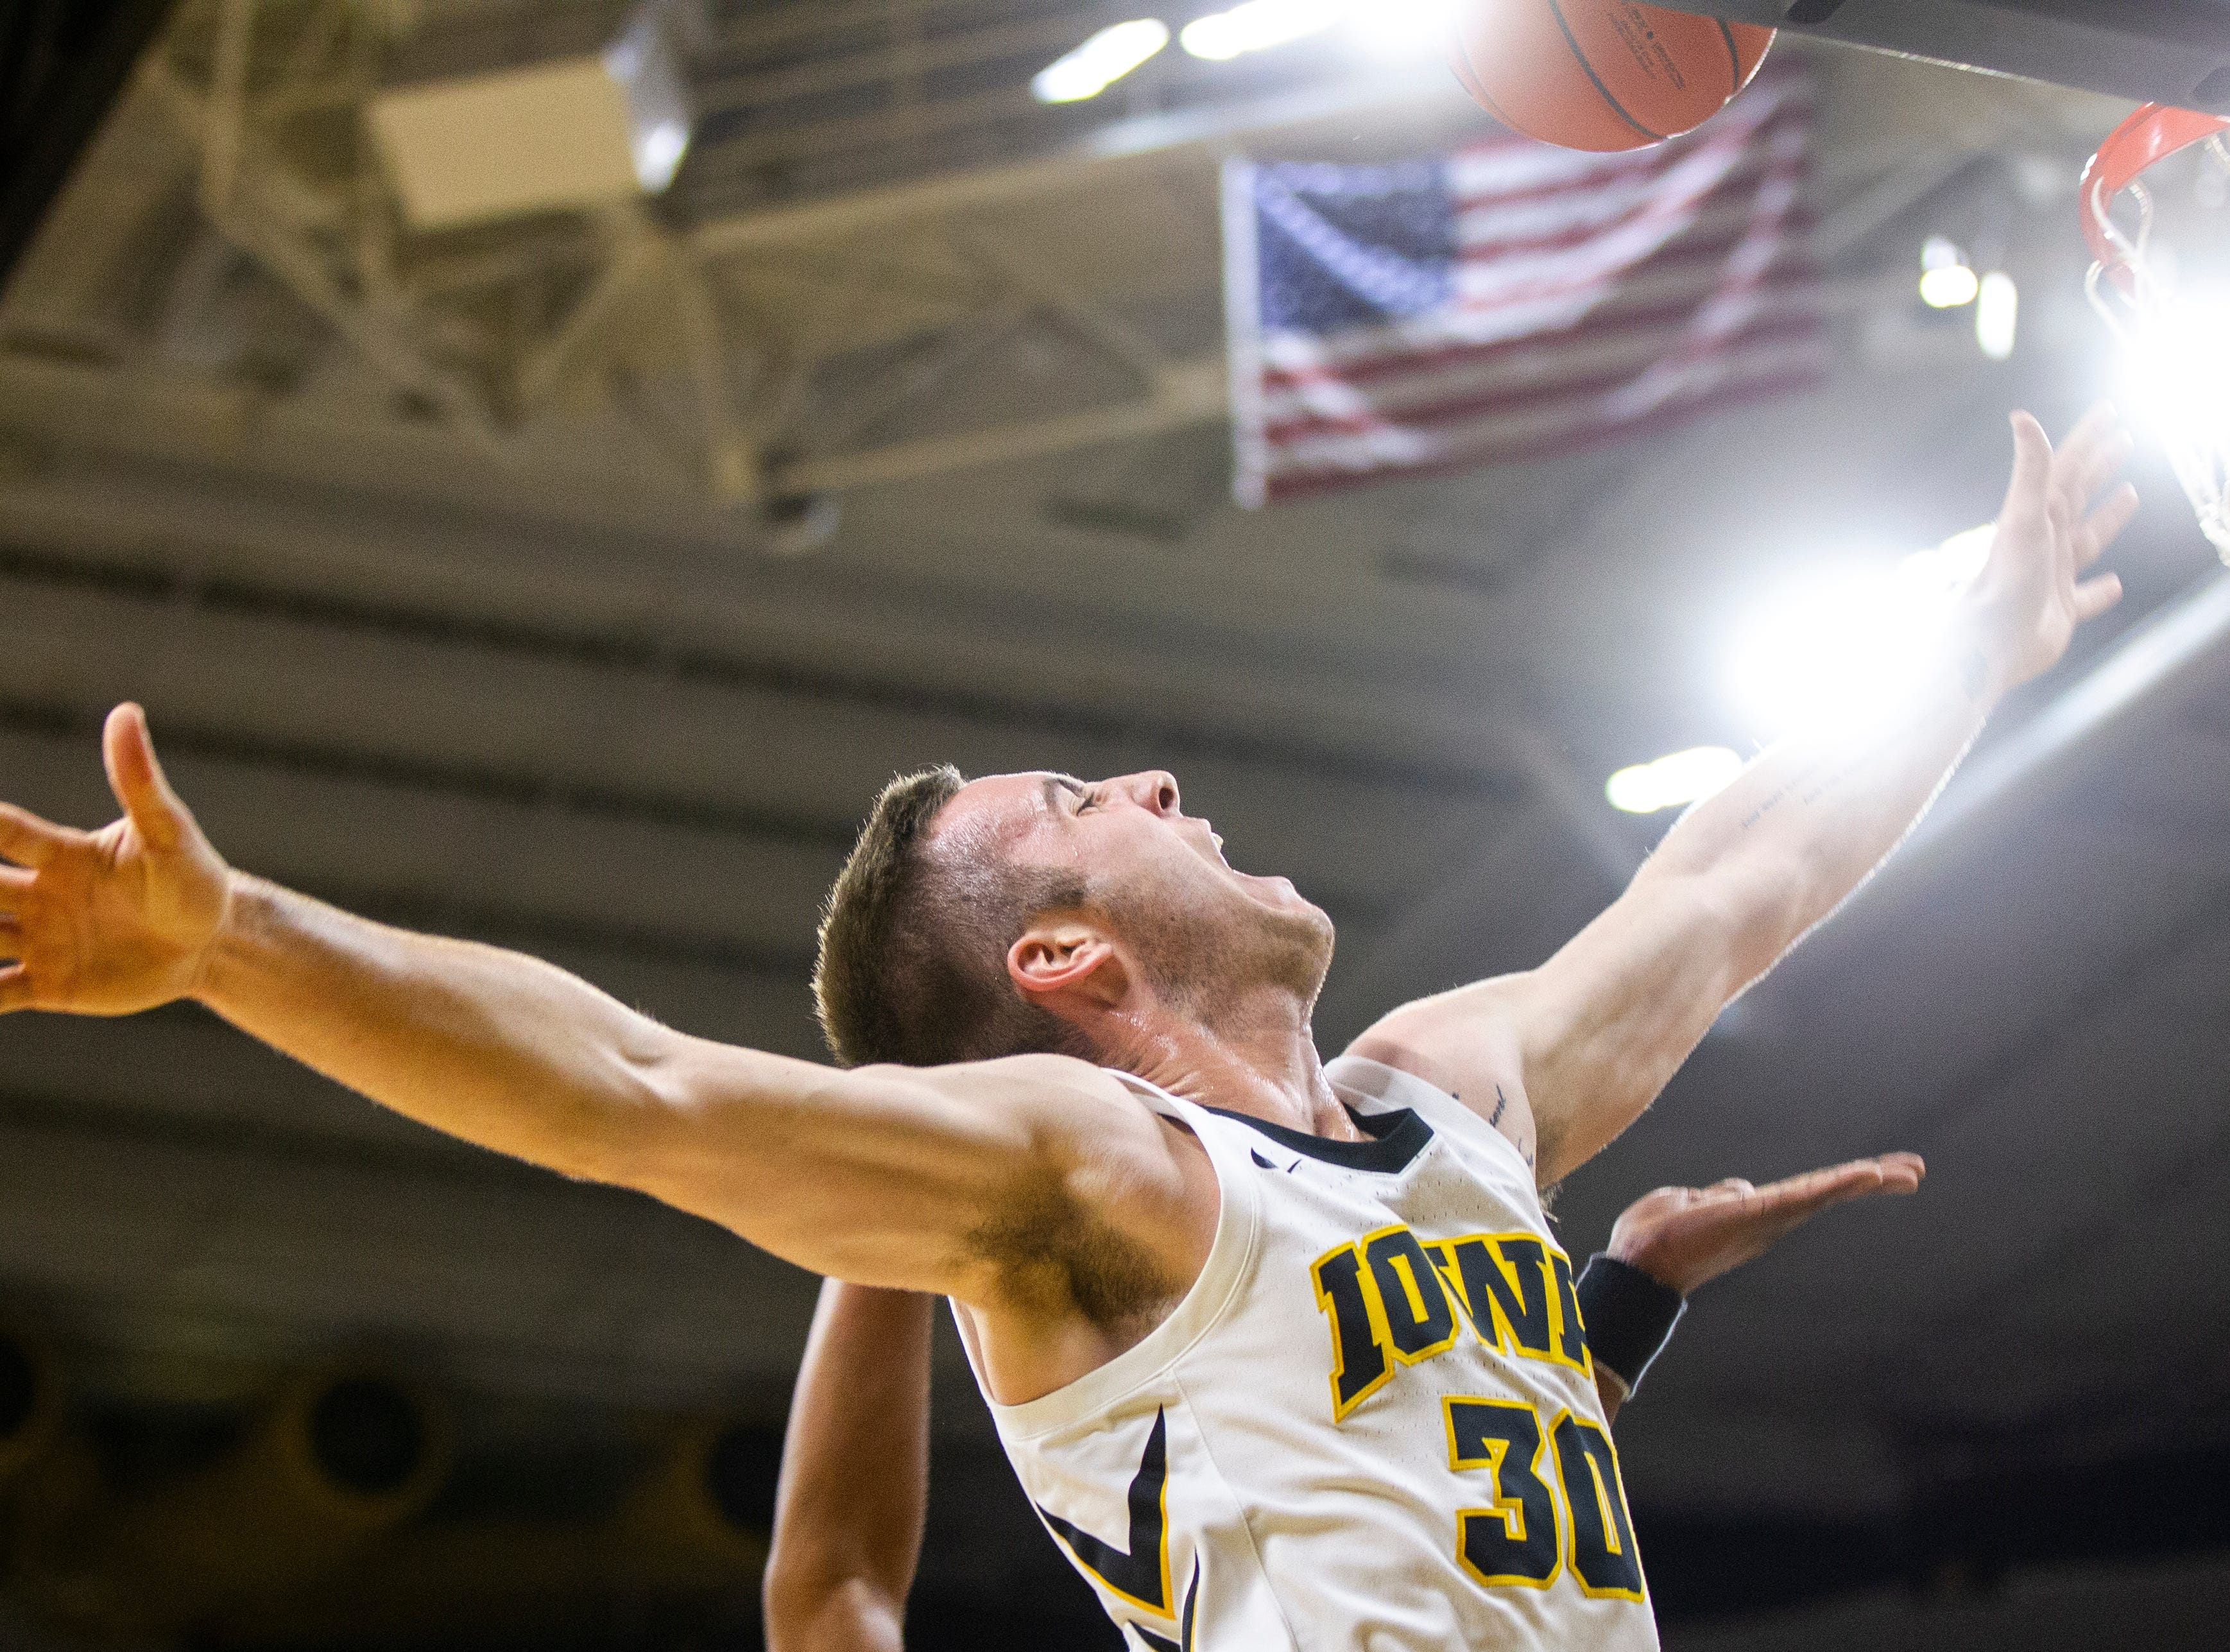 Iowa guard Connor McCaffery (30) gets fouled on his way to the hoop during an NCAA men's basketball game on Wednesday, Nov. 21, 2018, at Carver-Hawkeye Arena in Iowa City.